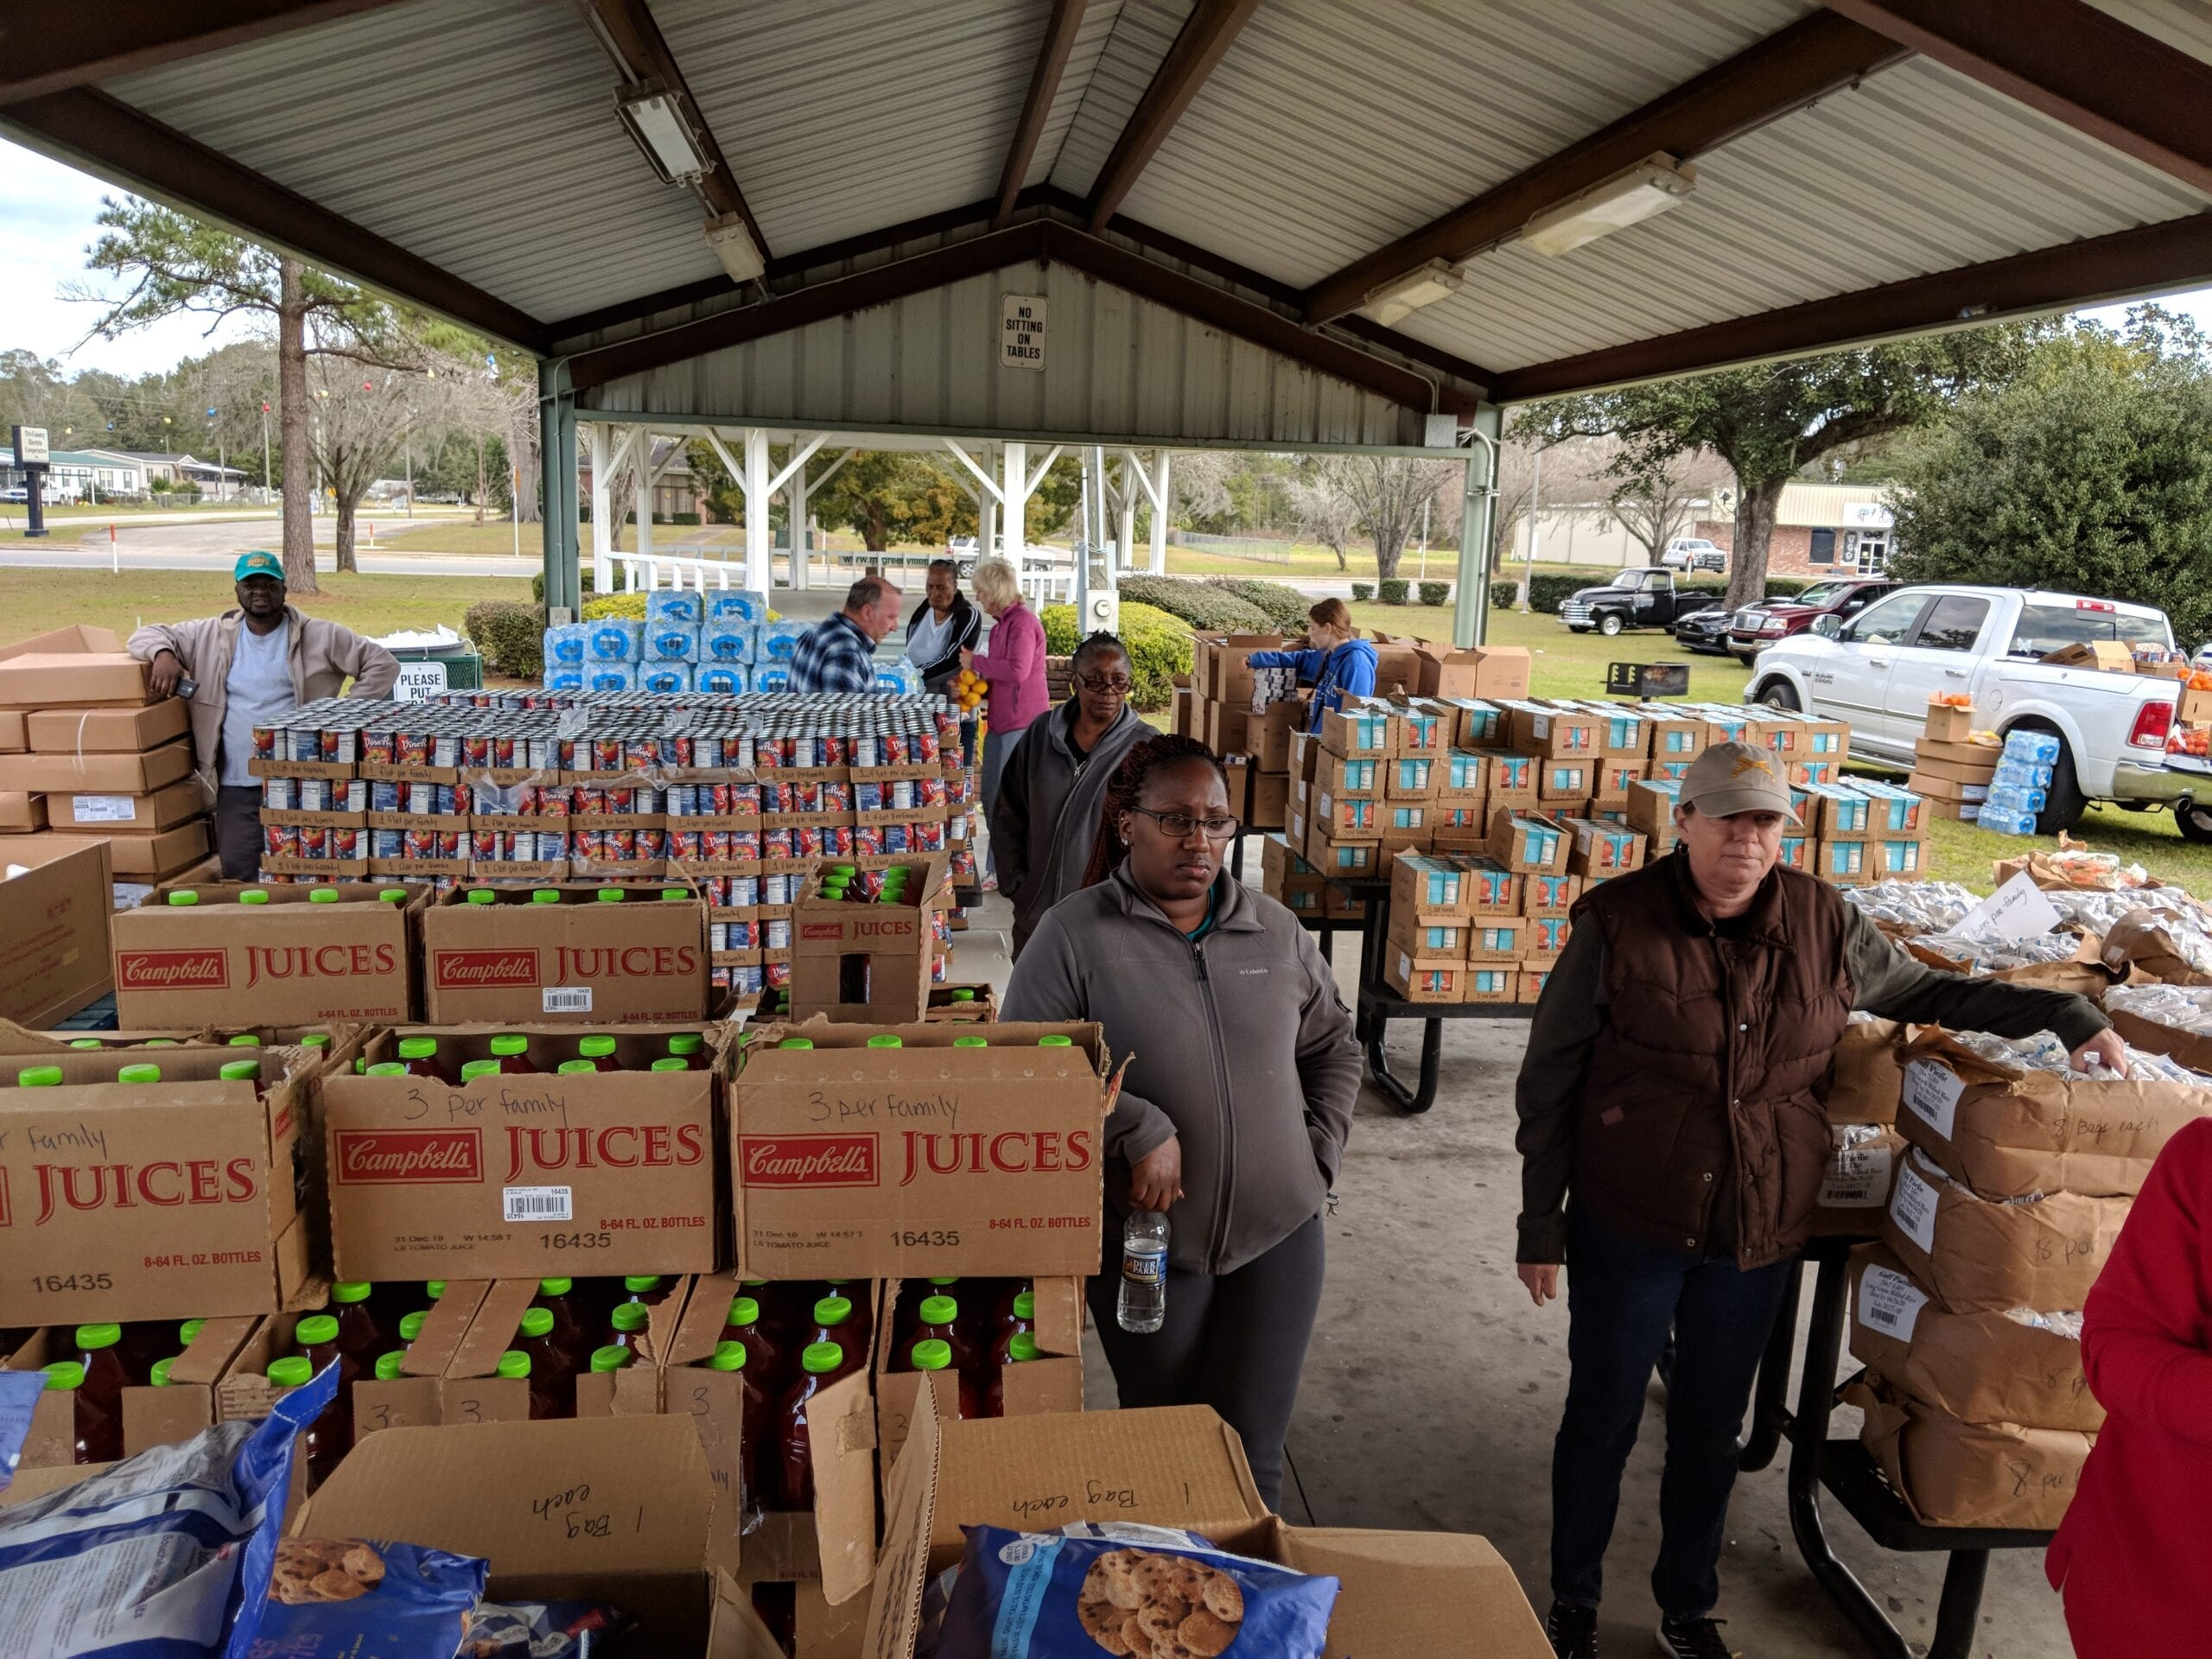 Boxes full of food and drinks stacked on tables outside at a mobile food pantry